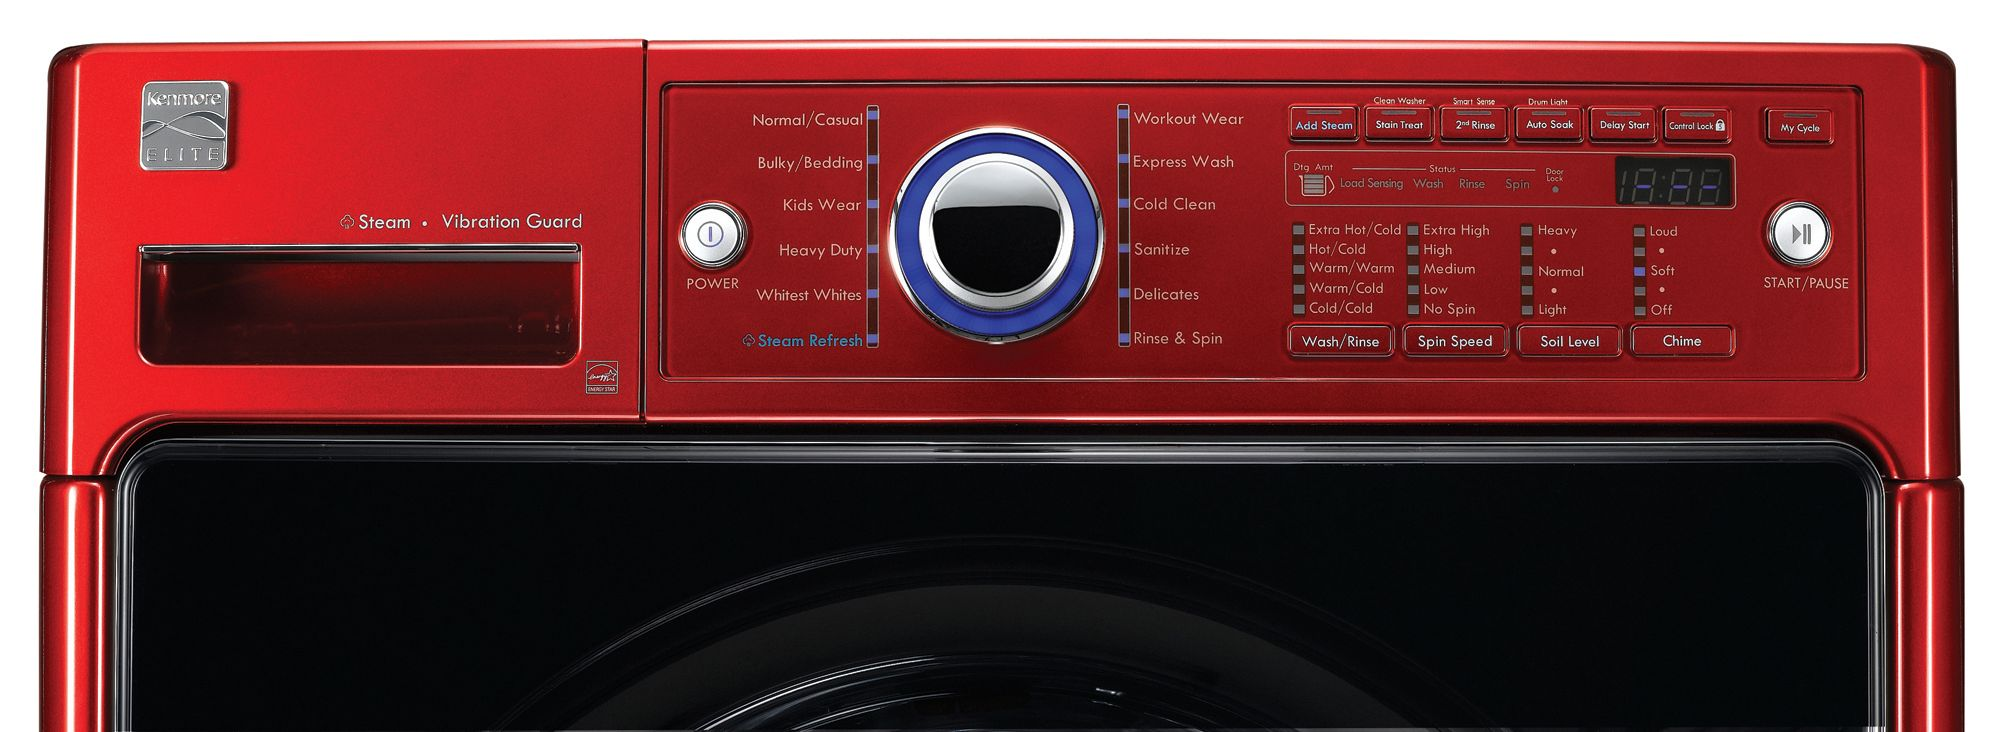 Kenmore Elite 3.9 cu. ft. Front-Load Washing Machine - Red